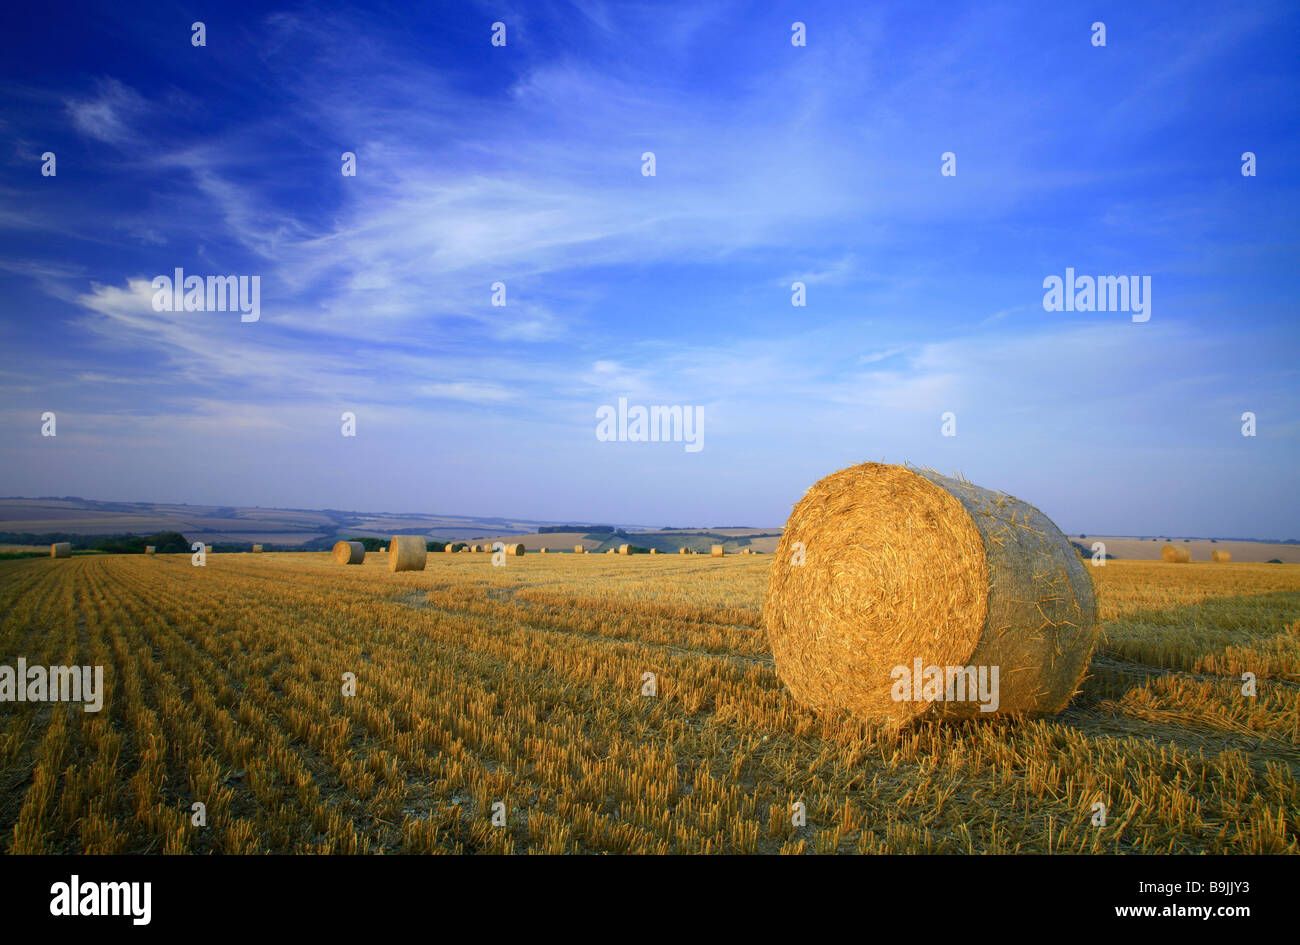 A bale of straw in a field of stubble after harvest with blue sky and summer clouds - Stock Image